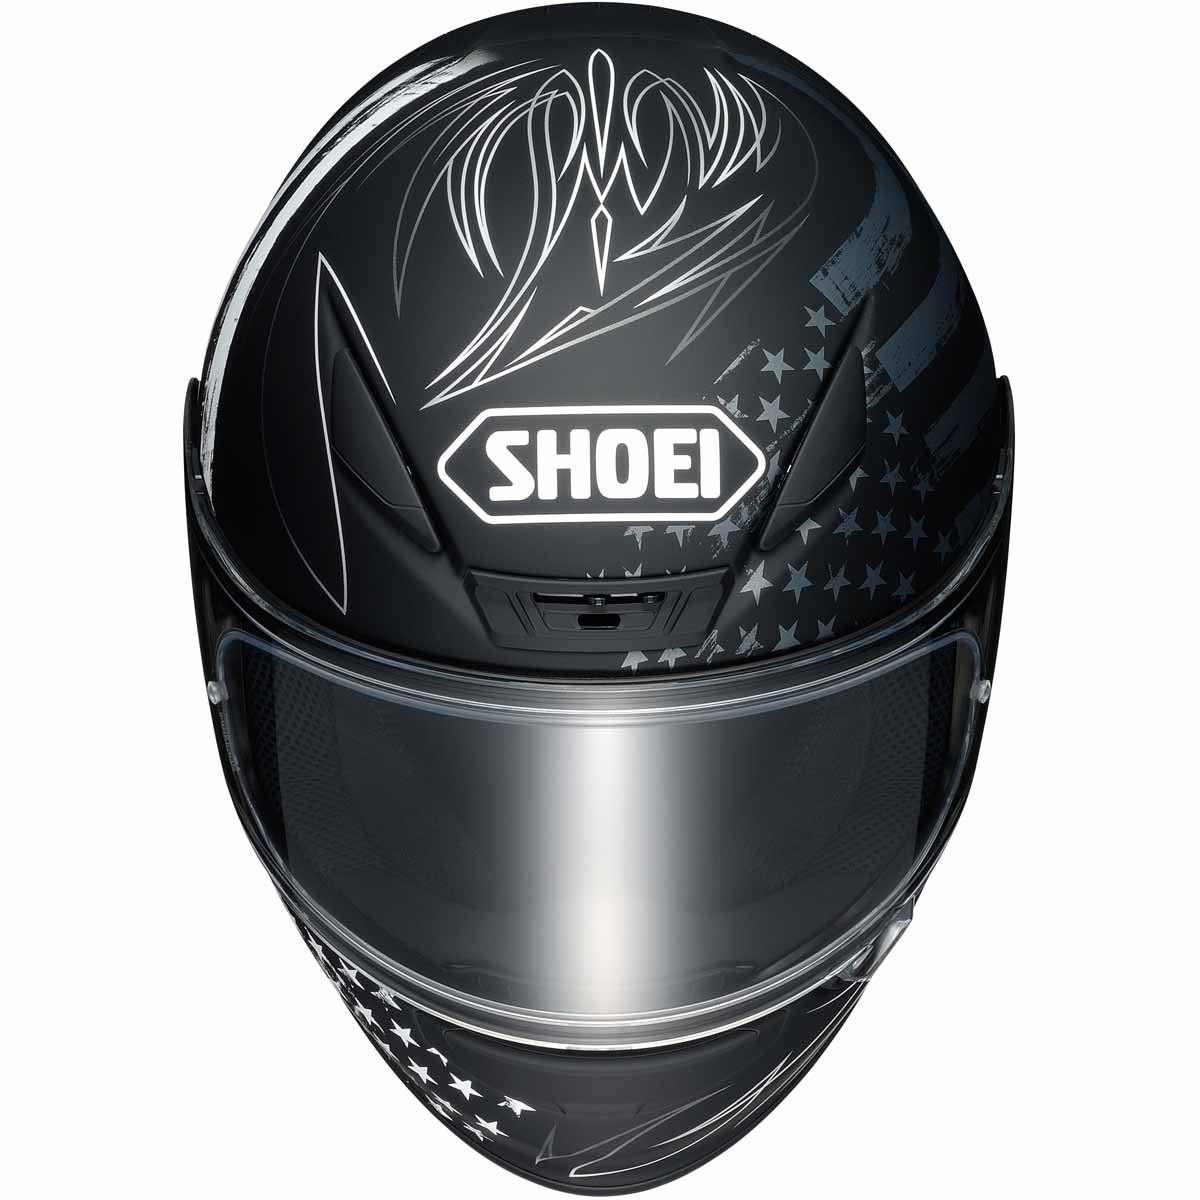 miniature 4 - Shoei RF-1200 Dedicated Helmet Full Face Lightweight DOT SNELL XS-2XL